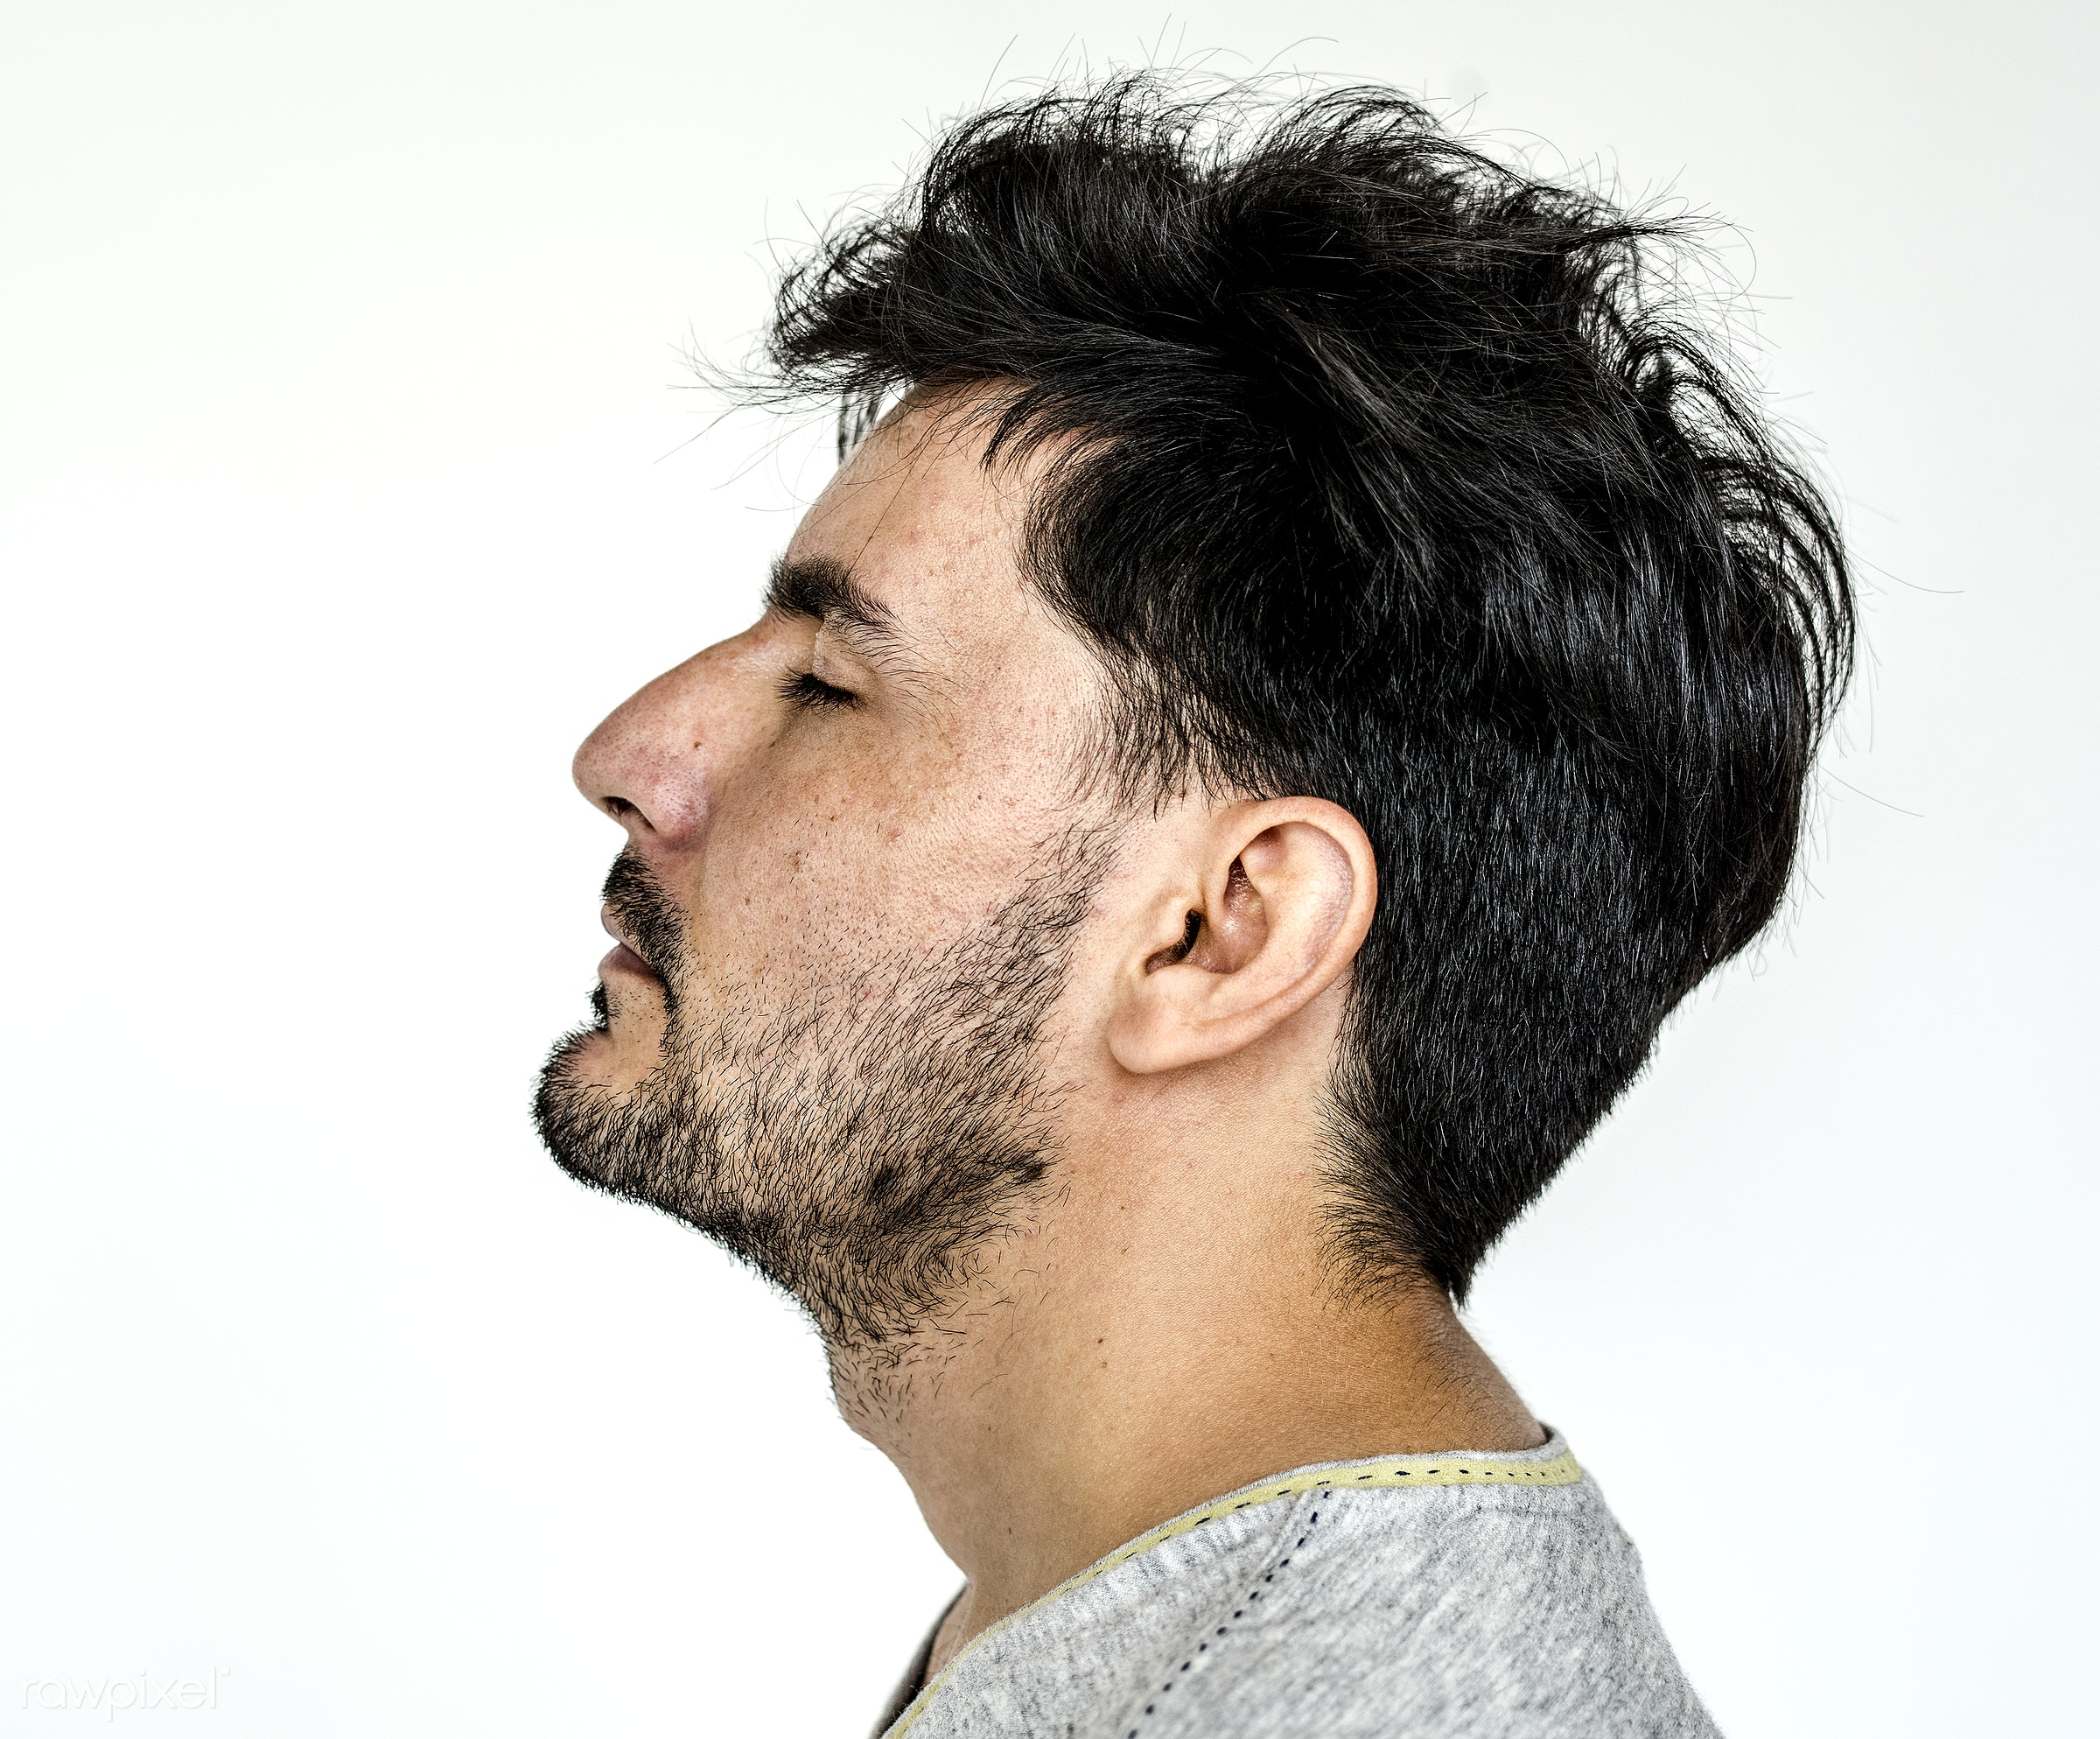 Portrait of an Afghan man - thinking, face, profile, think, tired, adult, afghan, afghanistan, alone, asian, beard, bearded...